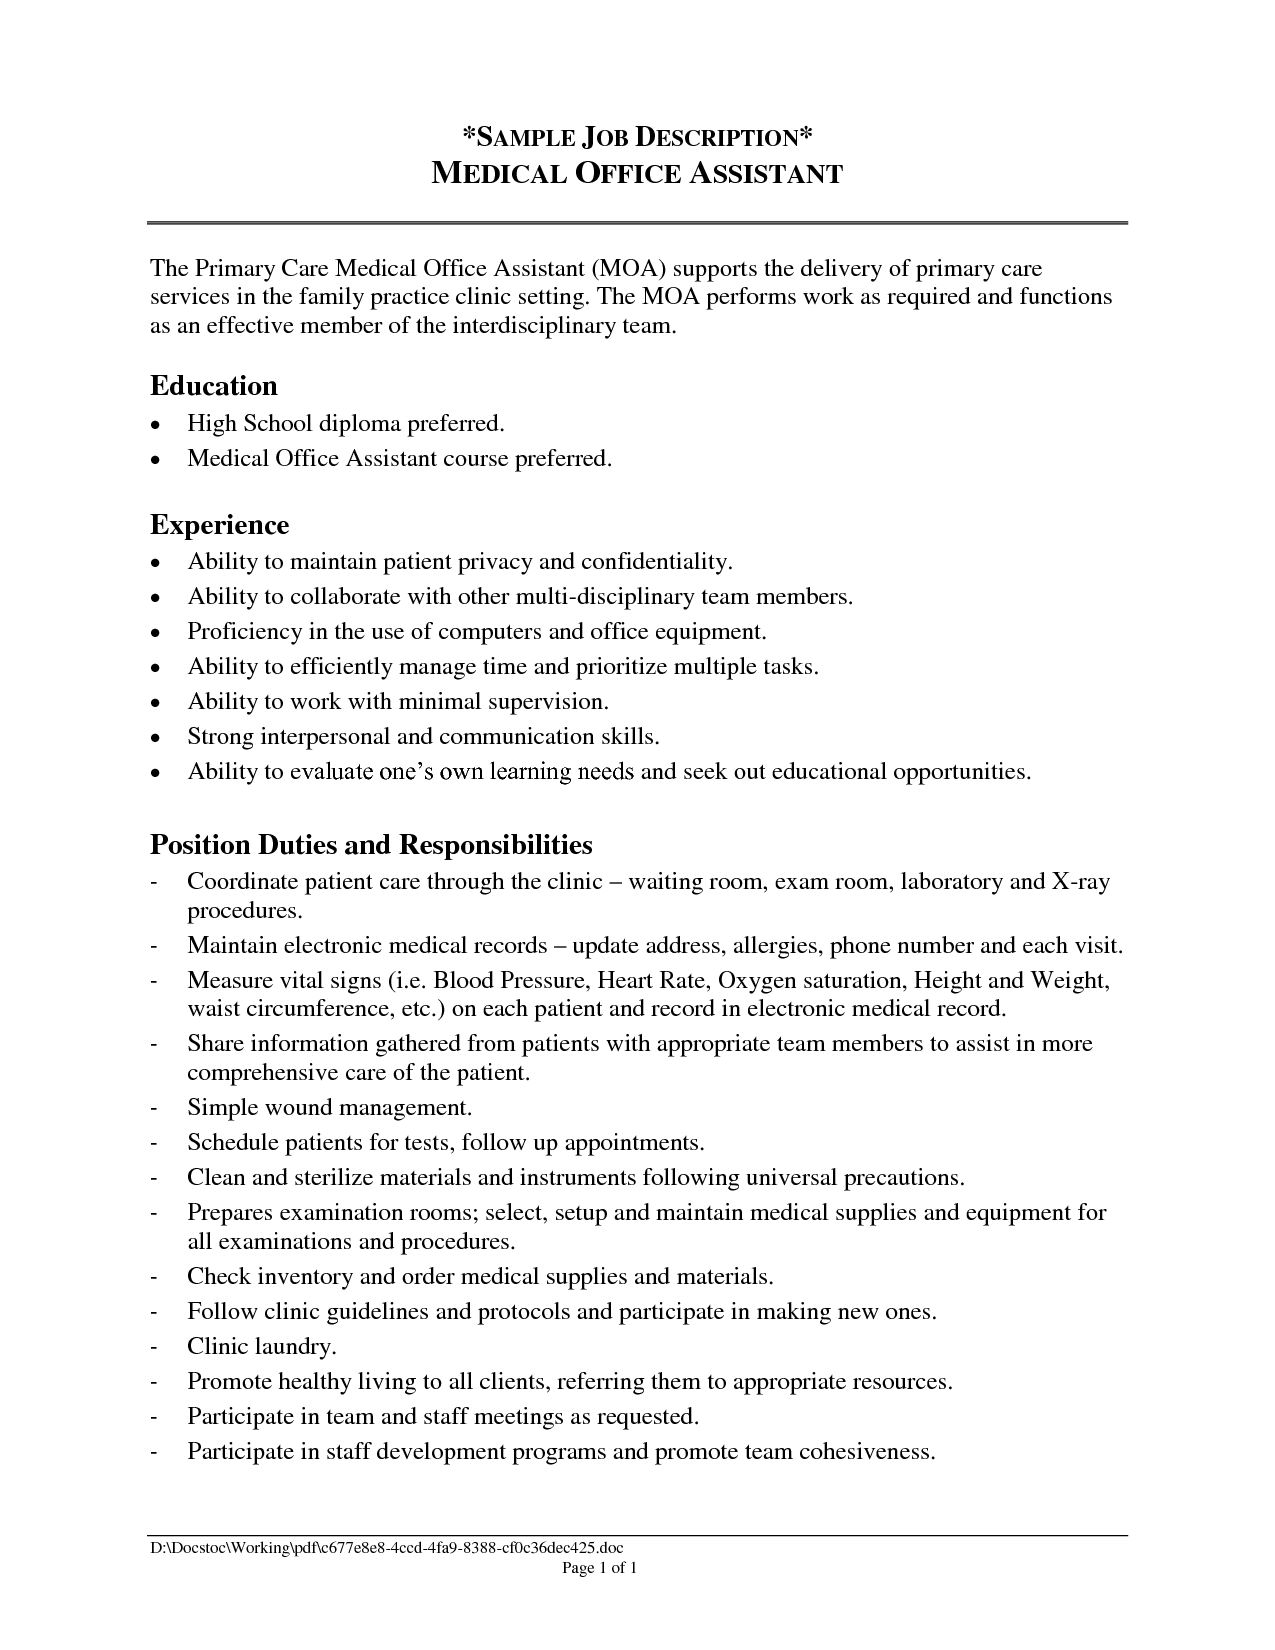 administrative assistant description for a resume